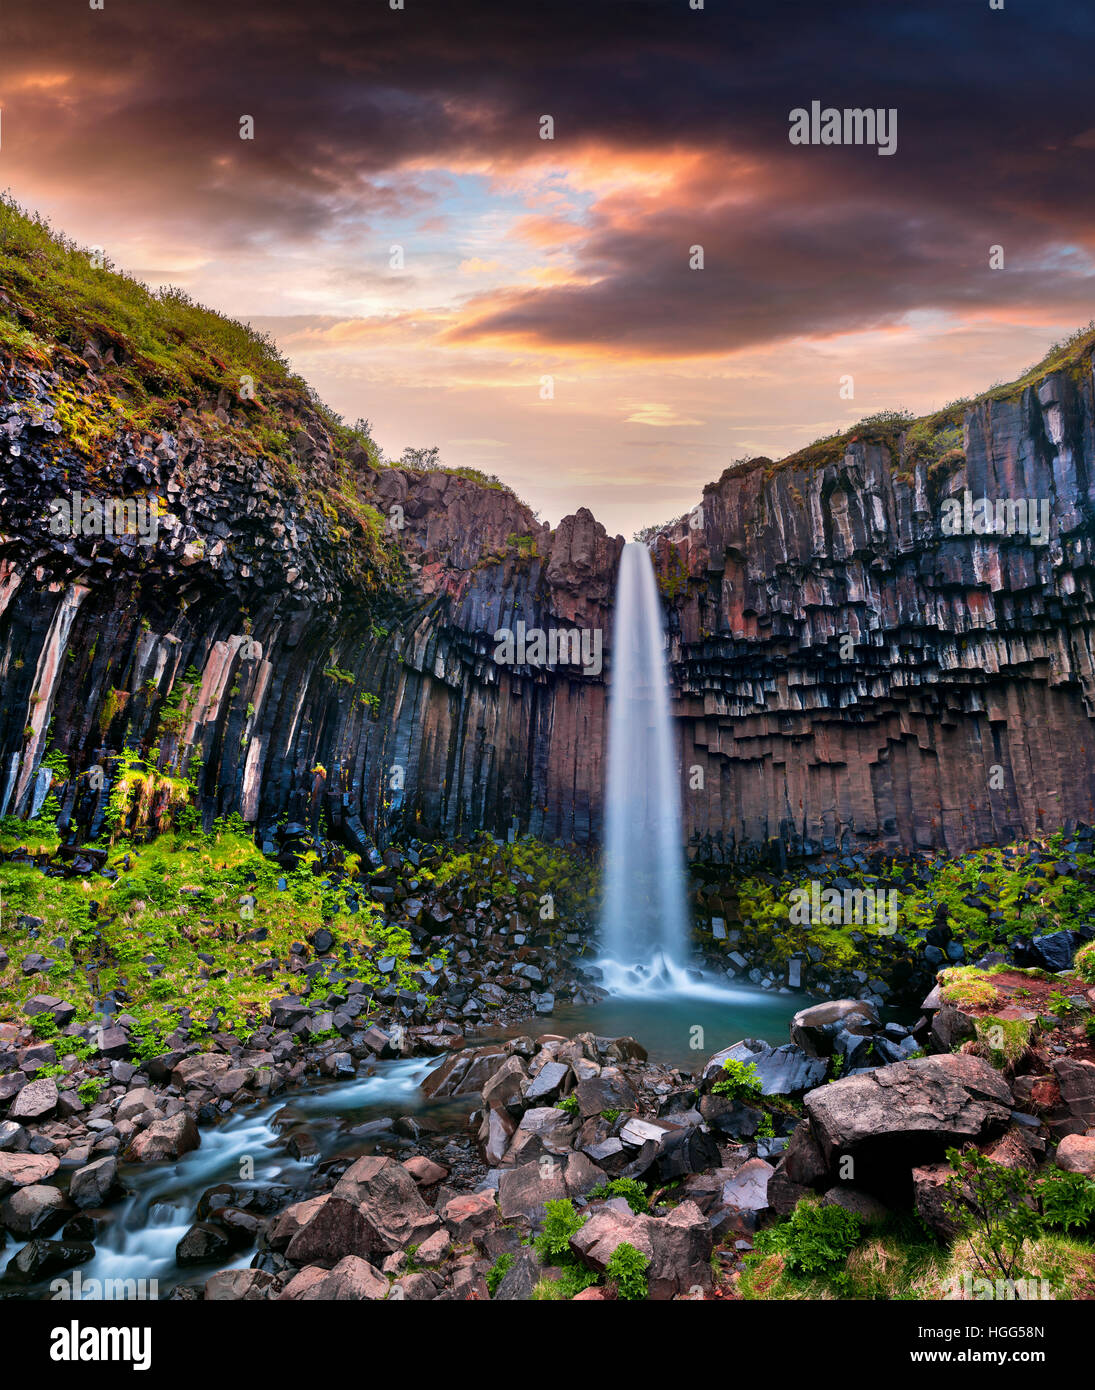 Summer scene of famous Svartifoss (Black Fall) Waterfall. Colorful sunrise in Skaftafell, Vatnajokull National Park, - Stock Image